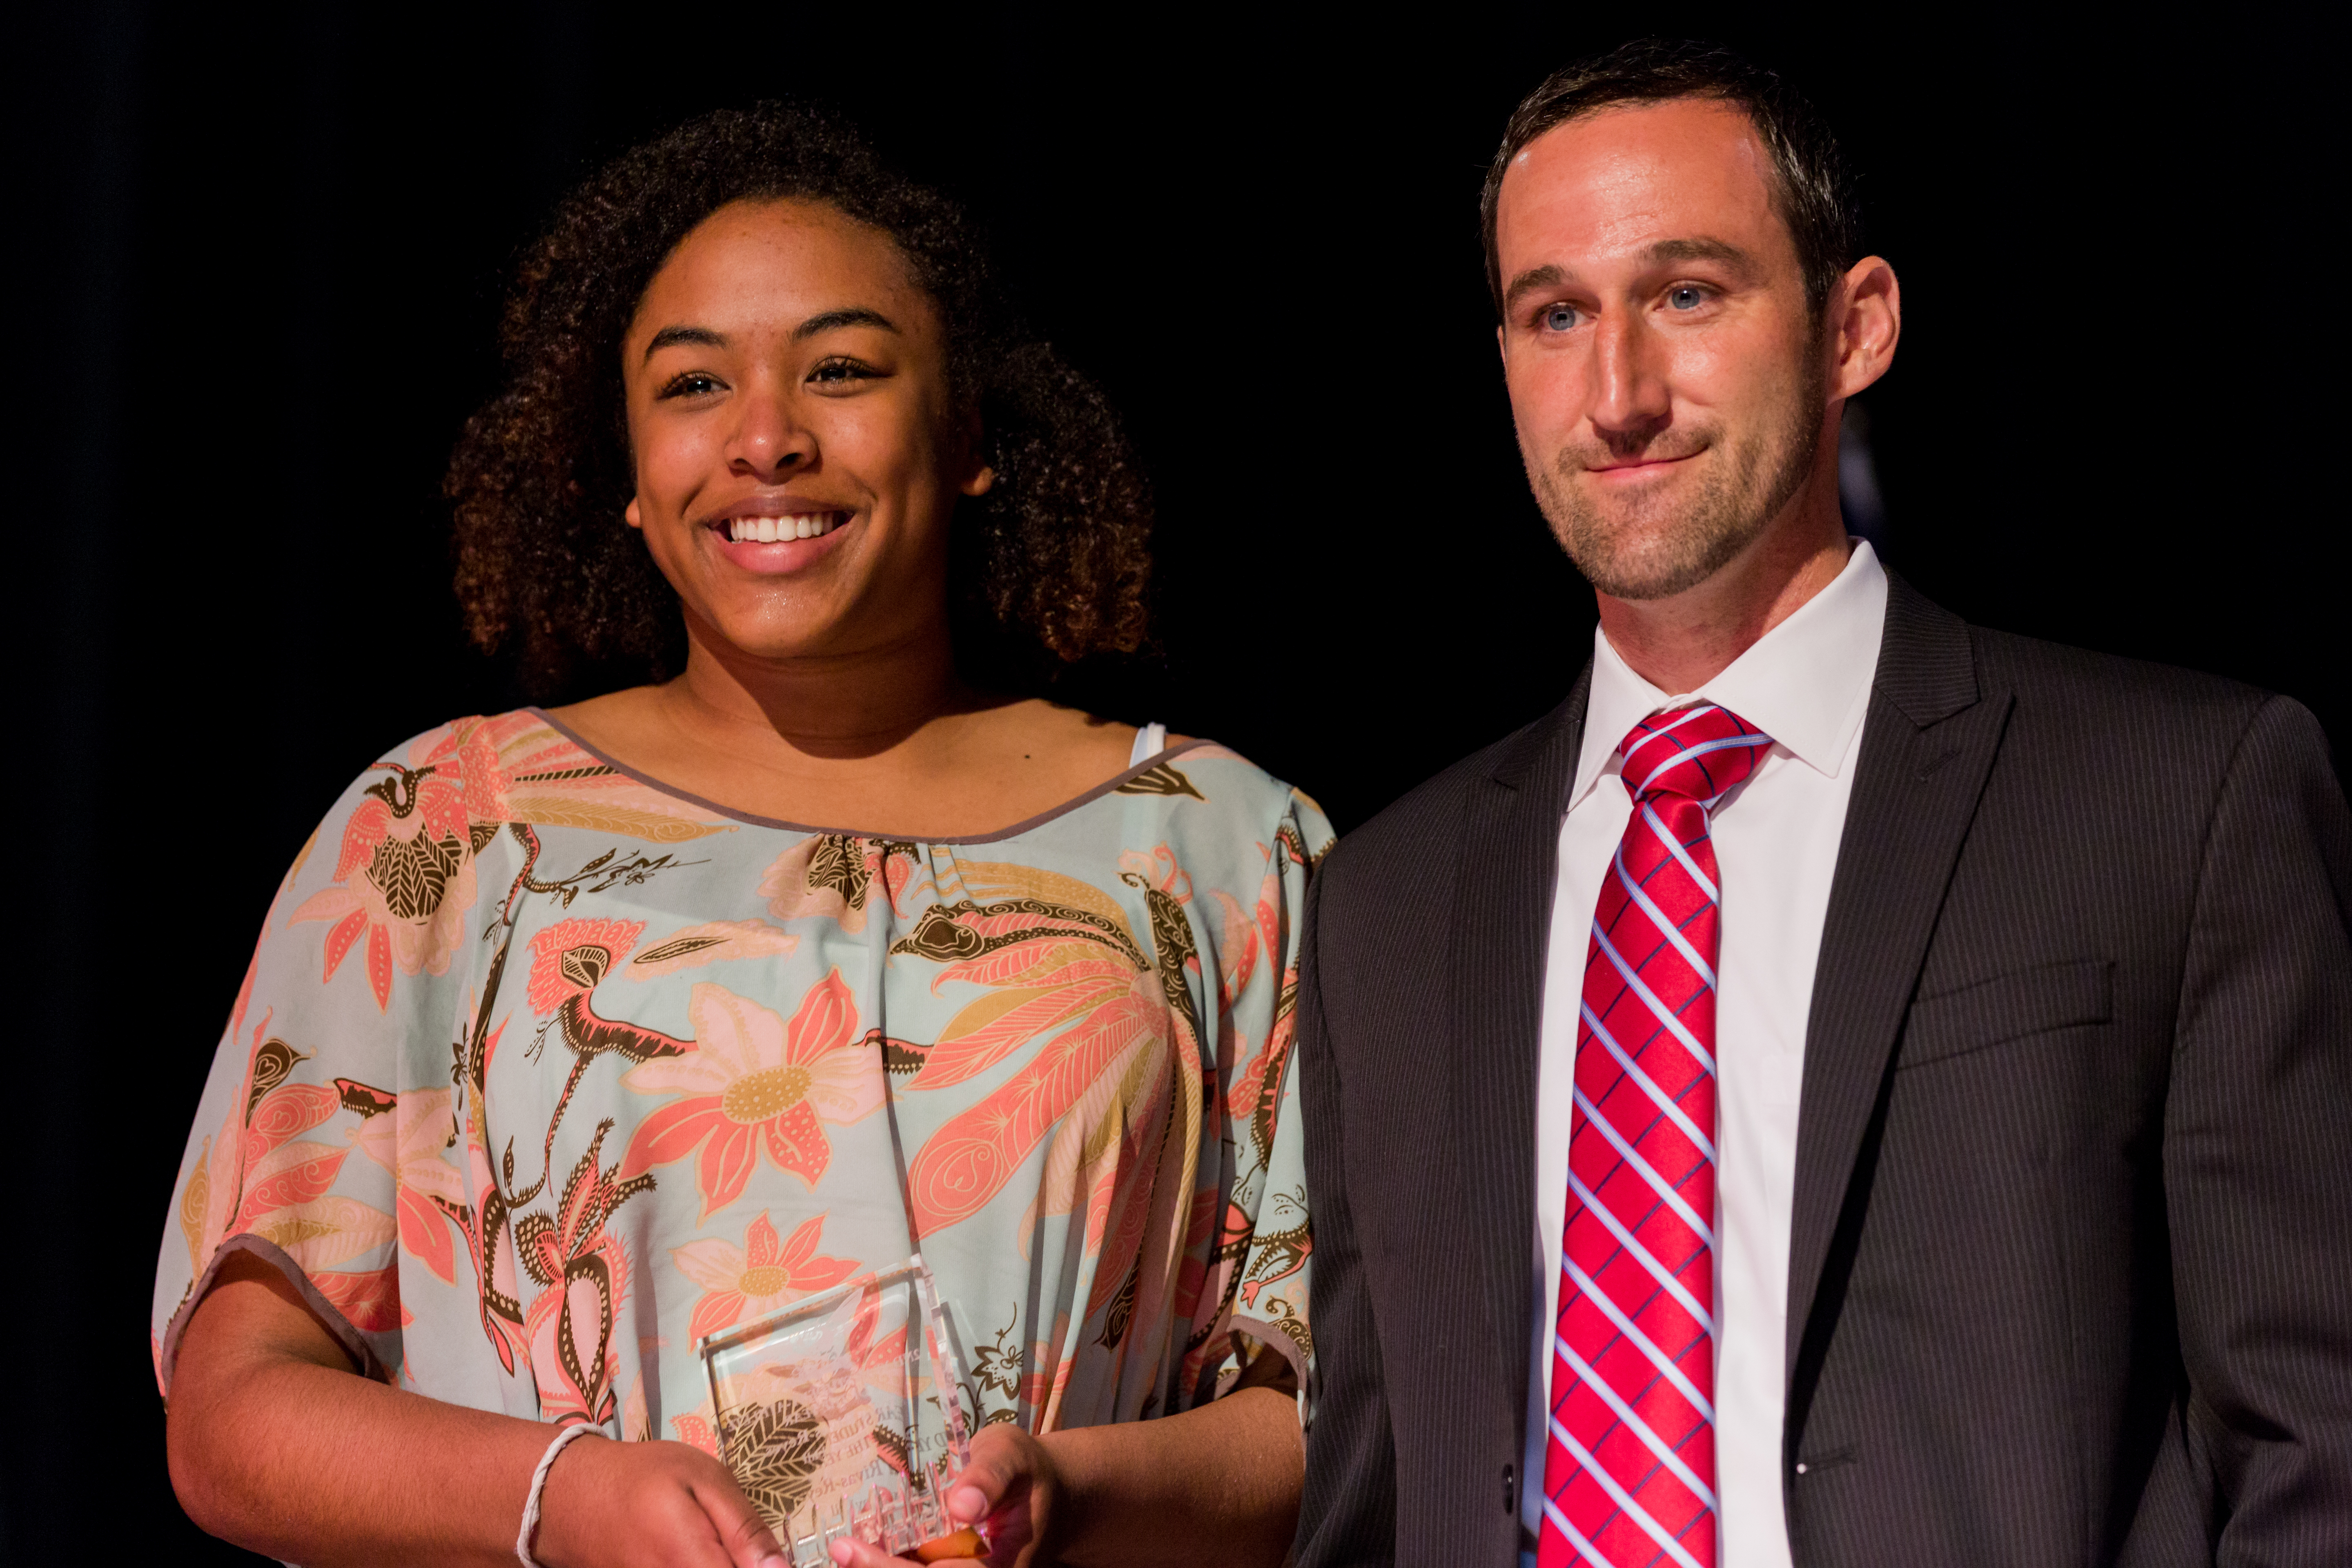 Diva rivas reyes second year student athlete of the year